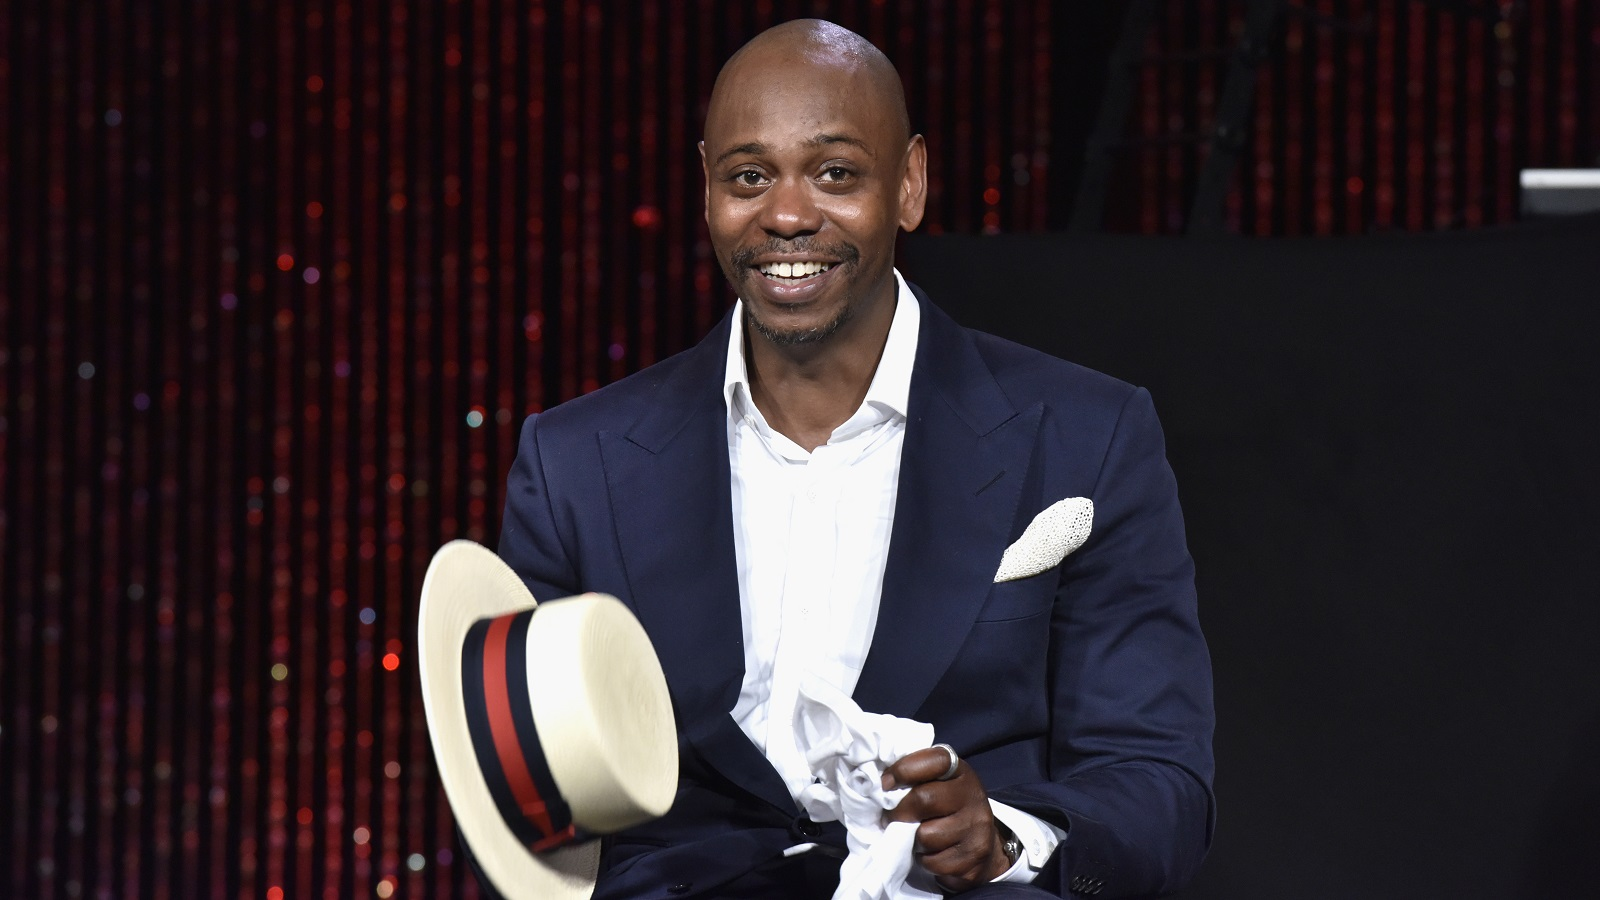 Dave Chappelle has added a second show to his surprise performance Saturday at Shea's Performing Arts Center. (Getty Images)